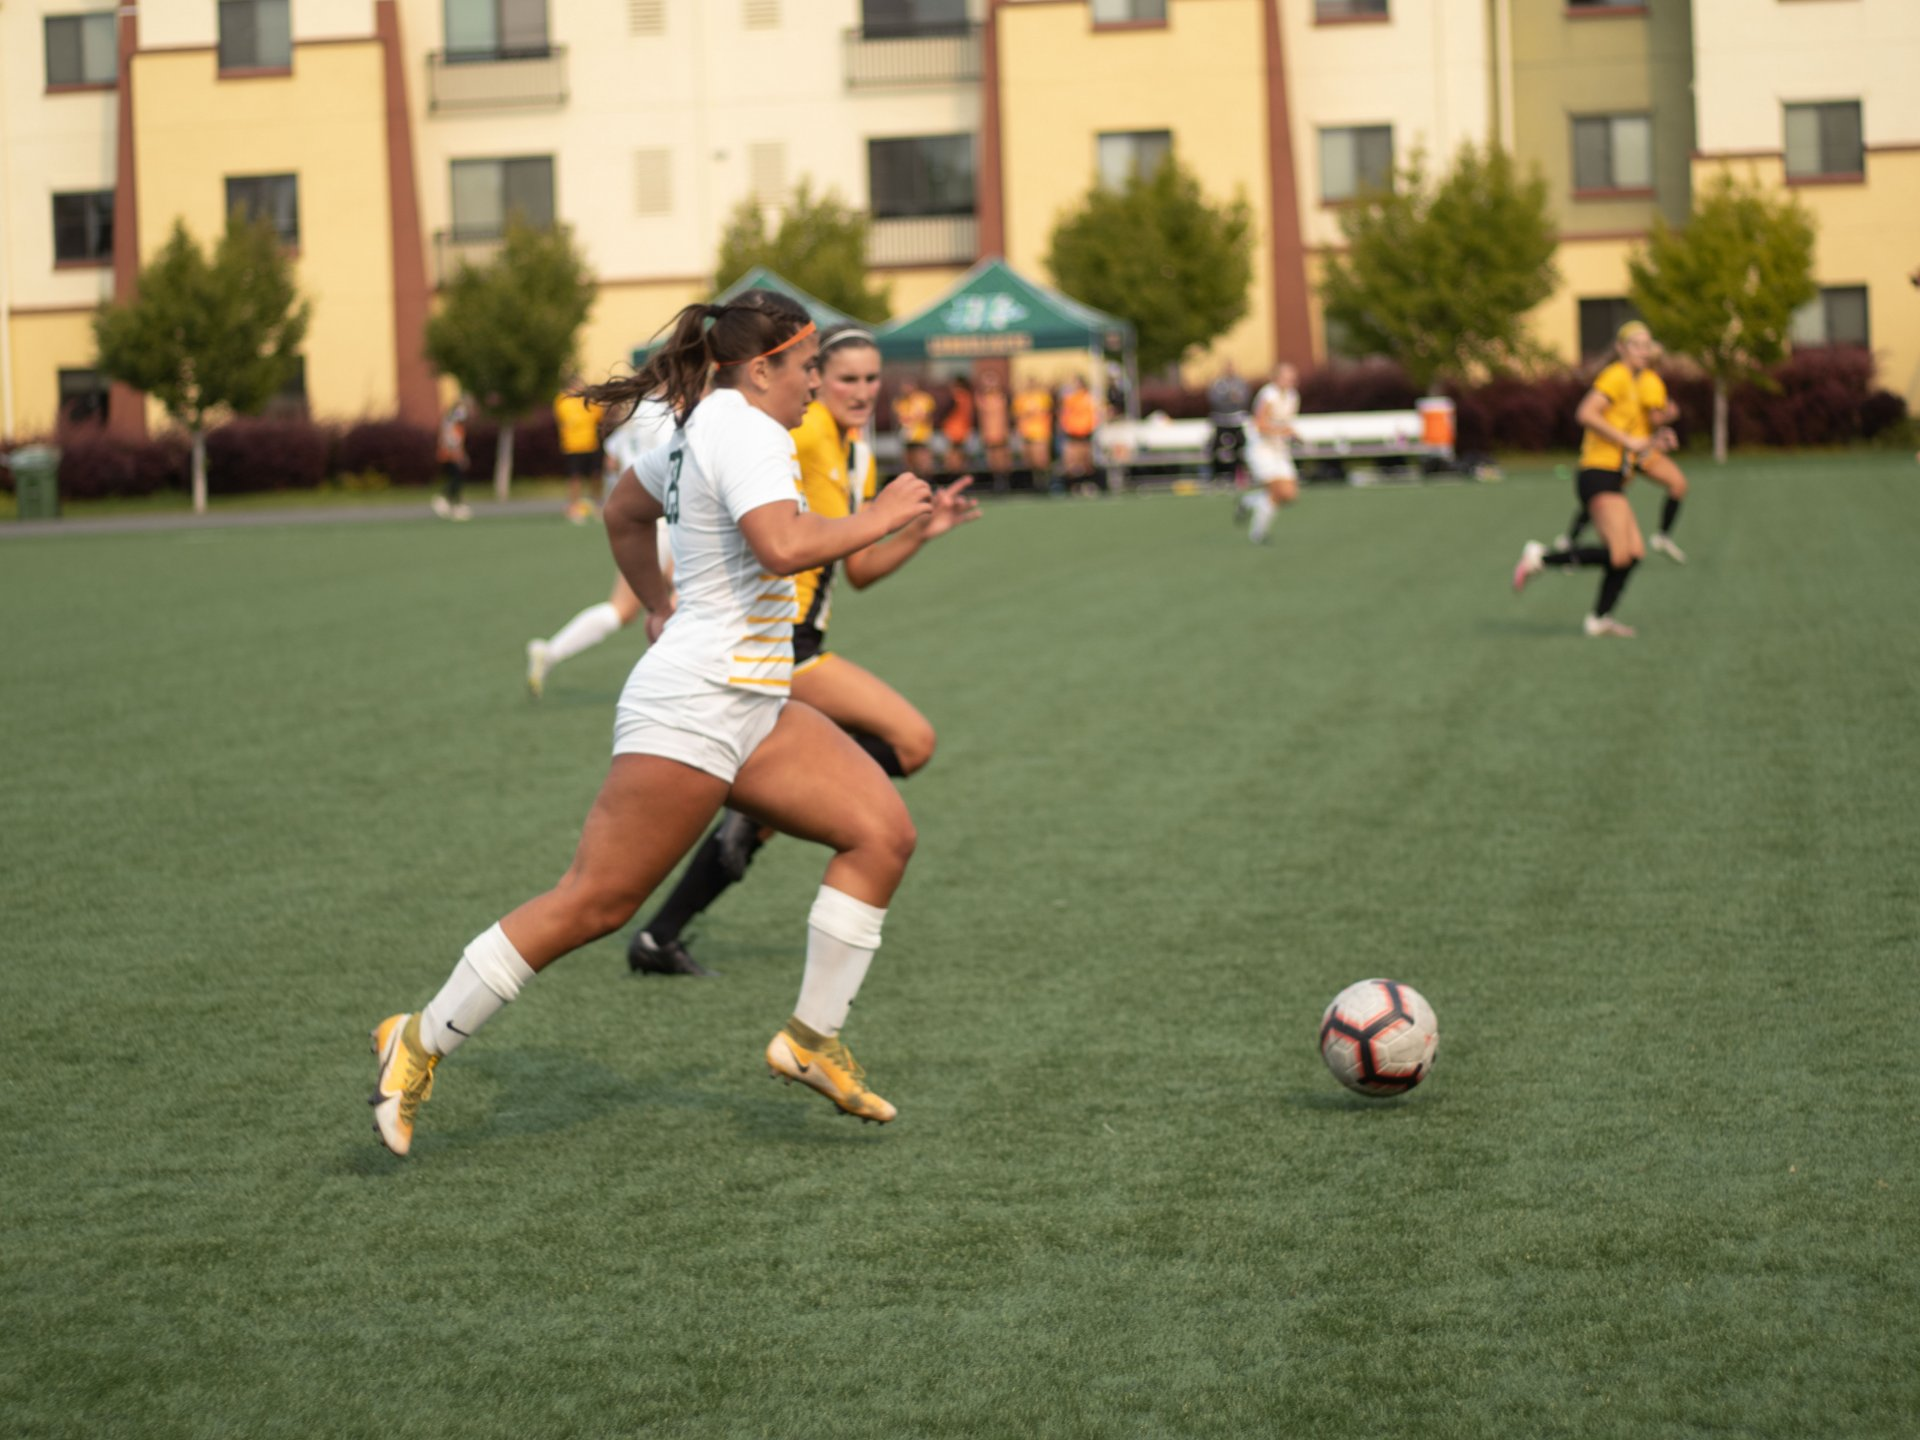 Humboldt State Women's Soccer plays Dominican University Friday September 3rd.